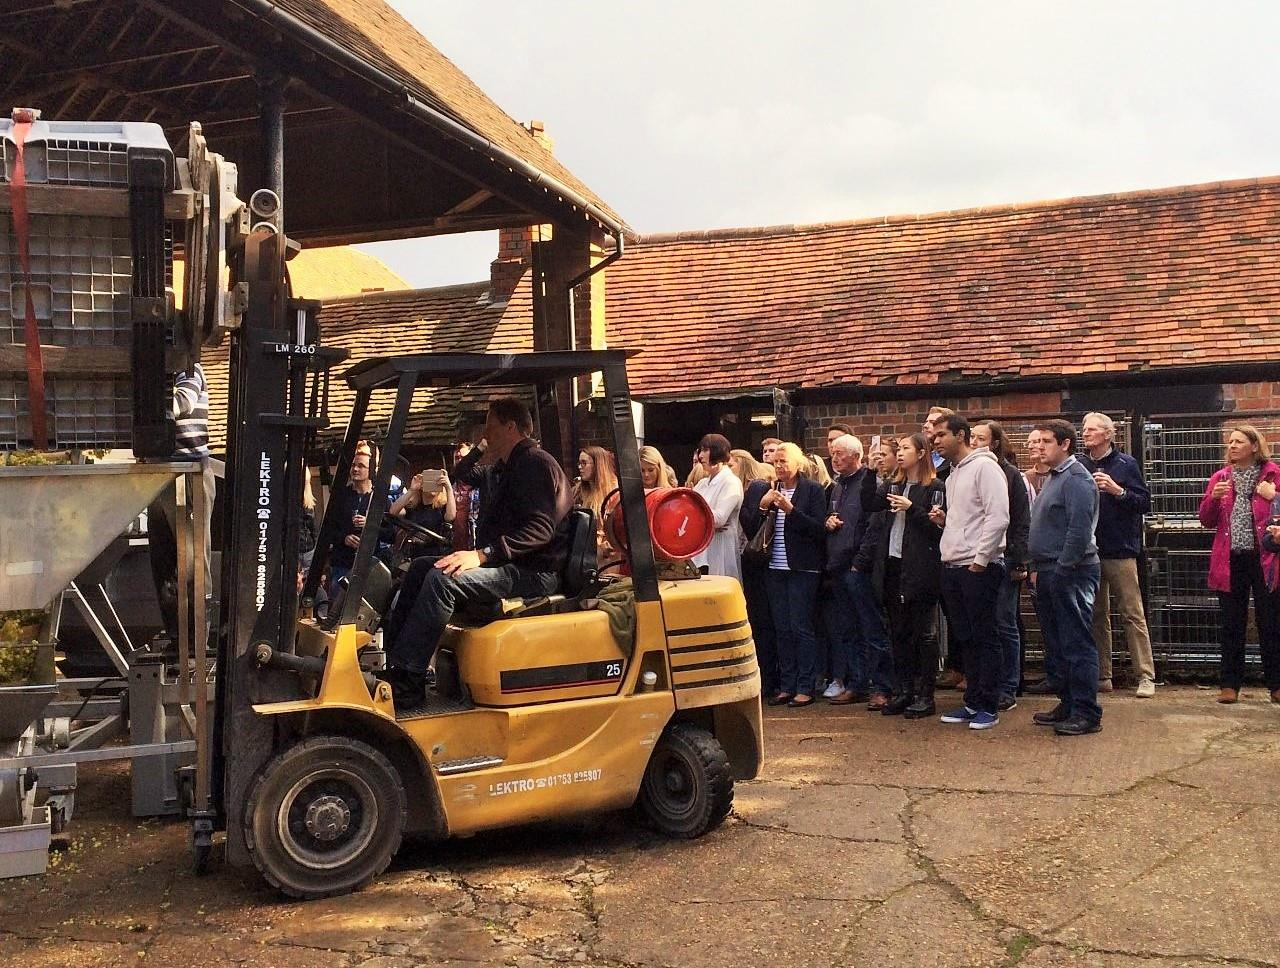 Saturday 18th January 2020 at 2 pm - Vineyard Tour & Wine Tasting